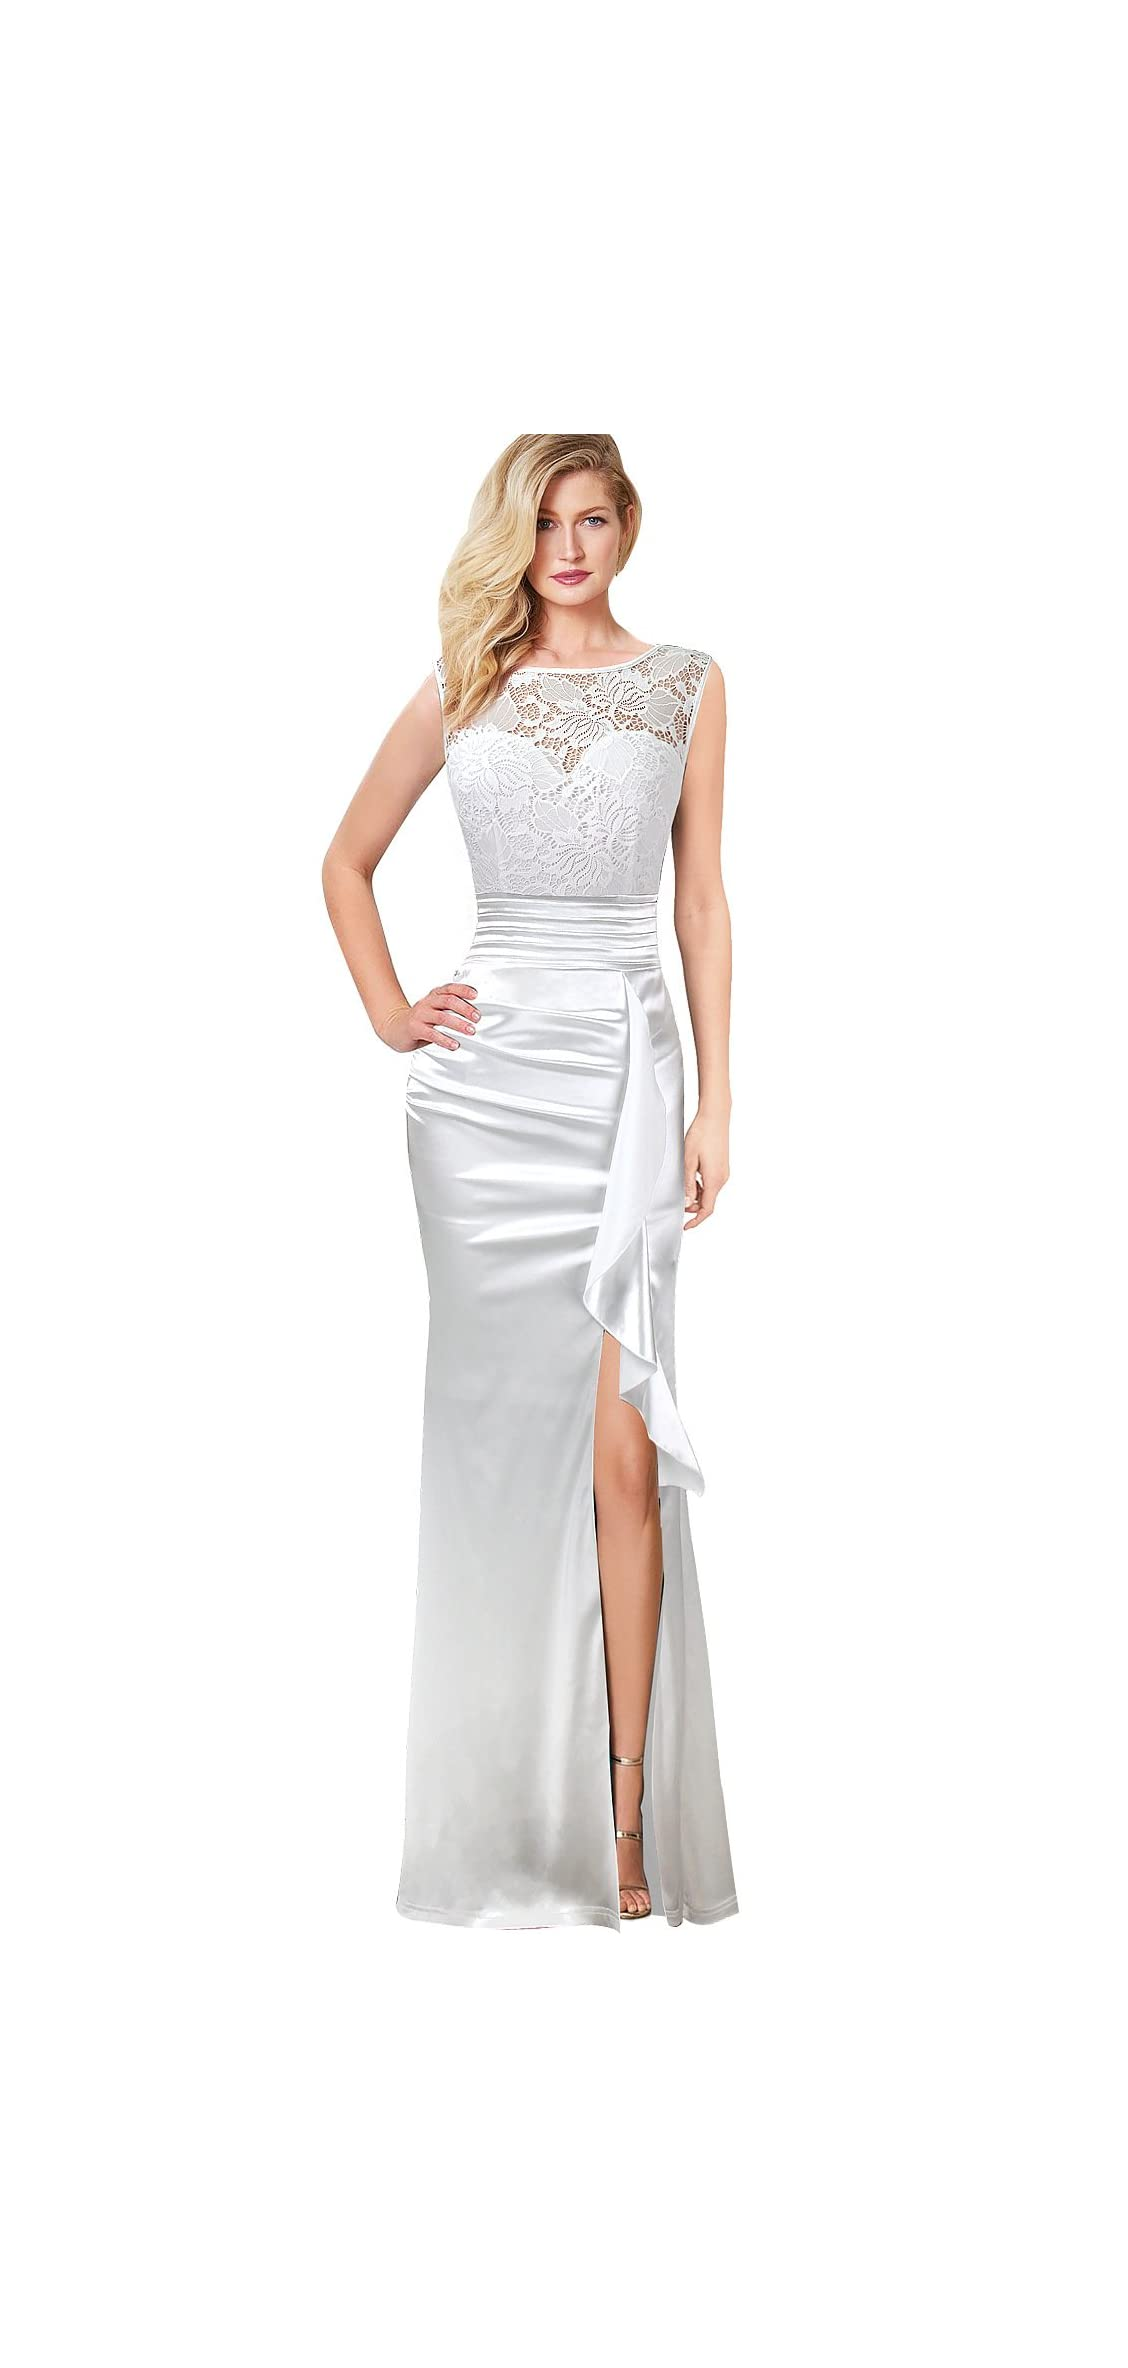 Womens Formal Ruched Ruffles Evening Prom Wedding Party